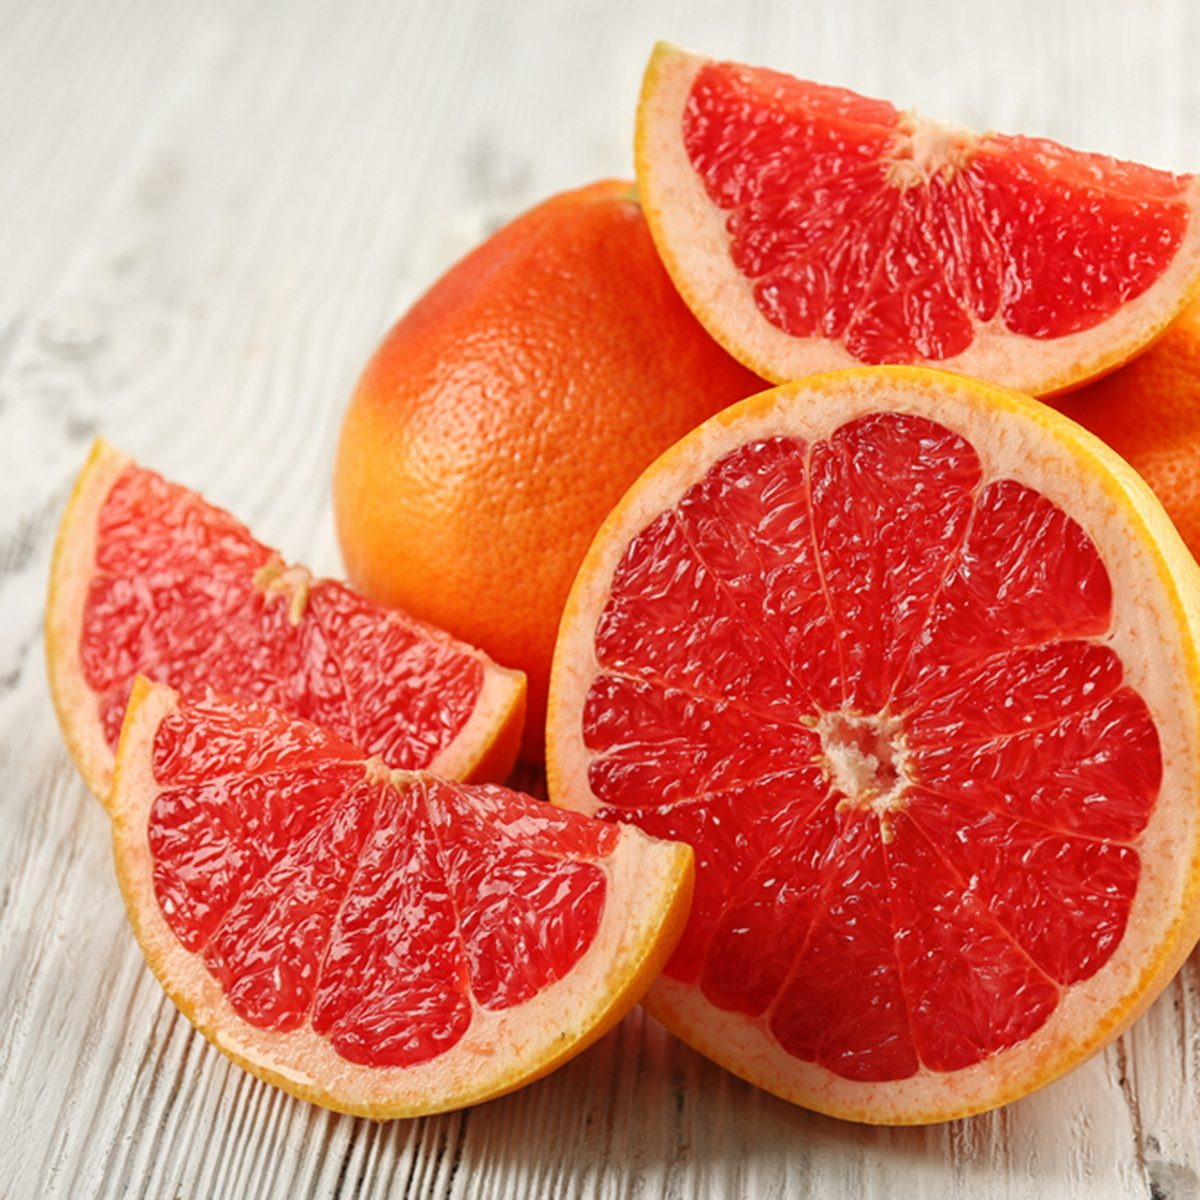 Juicy grapefruits on wooden background; Shutterstock ID 398660866